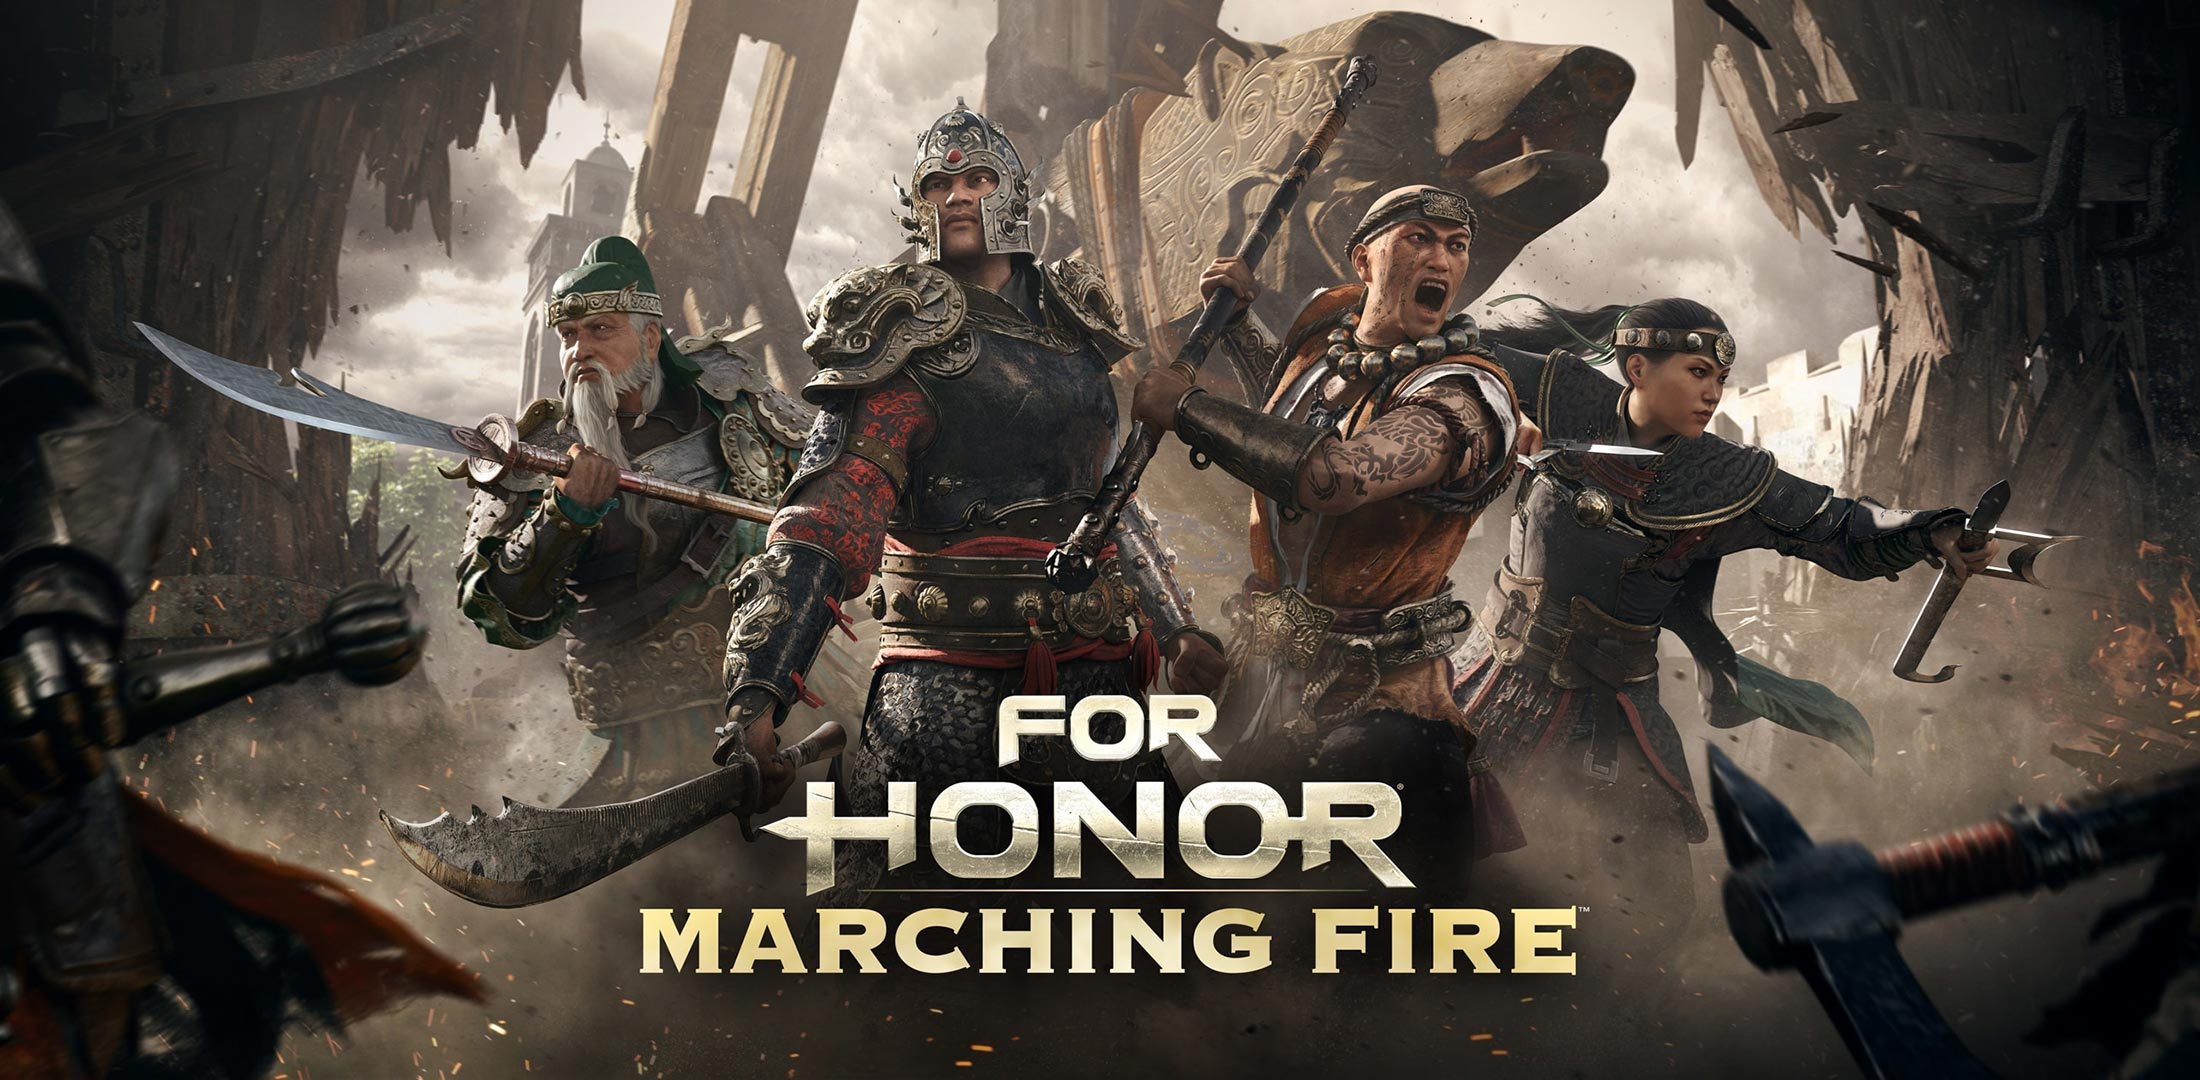 For Honor Marching Fire Released Today New Trailer